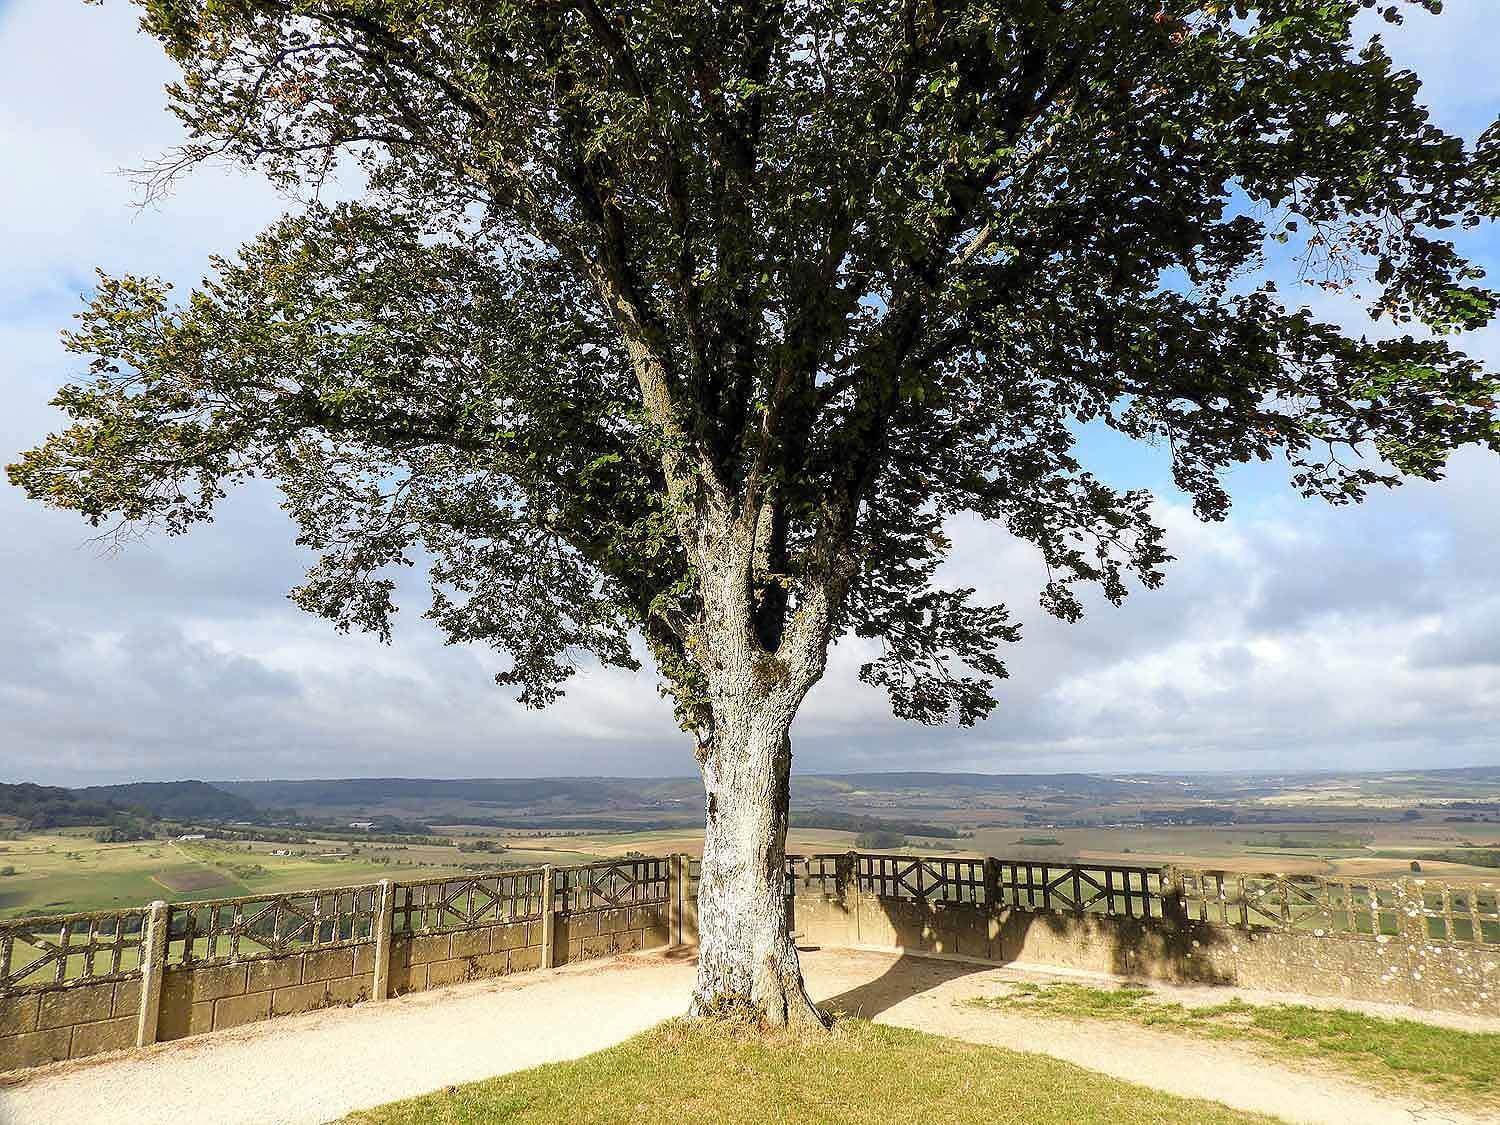 france-sion-basilica-lookout-overview-tree.jpg